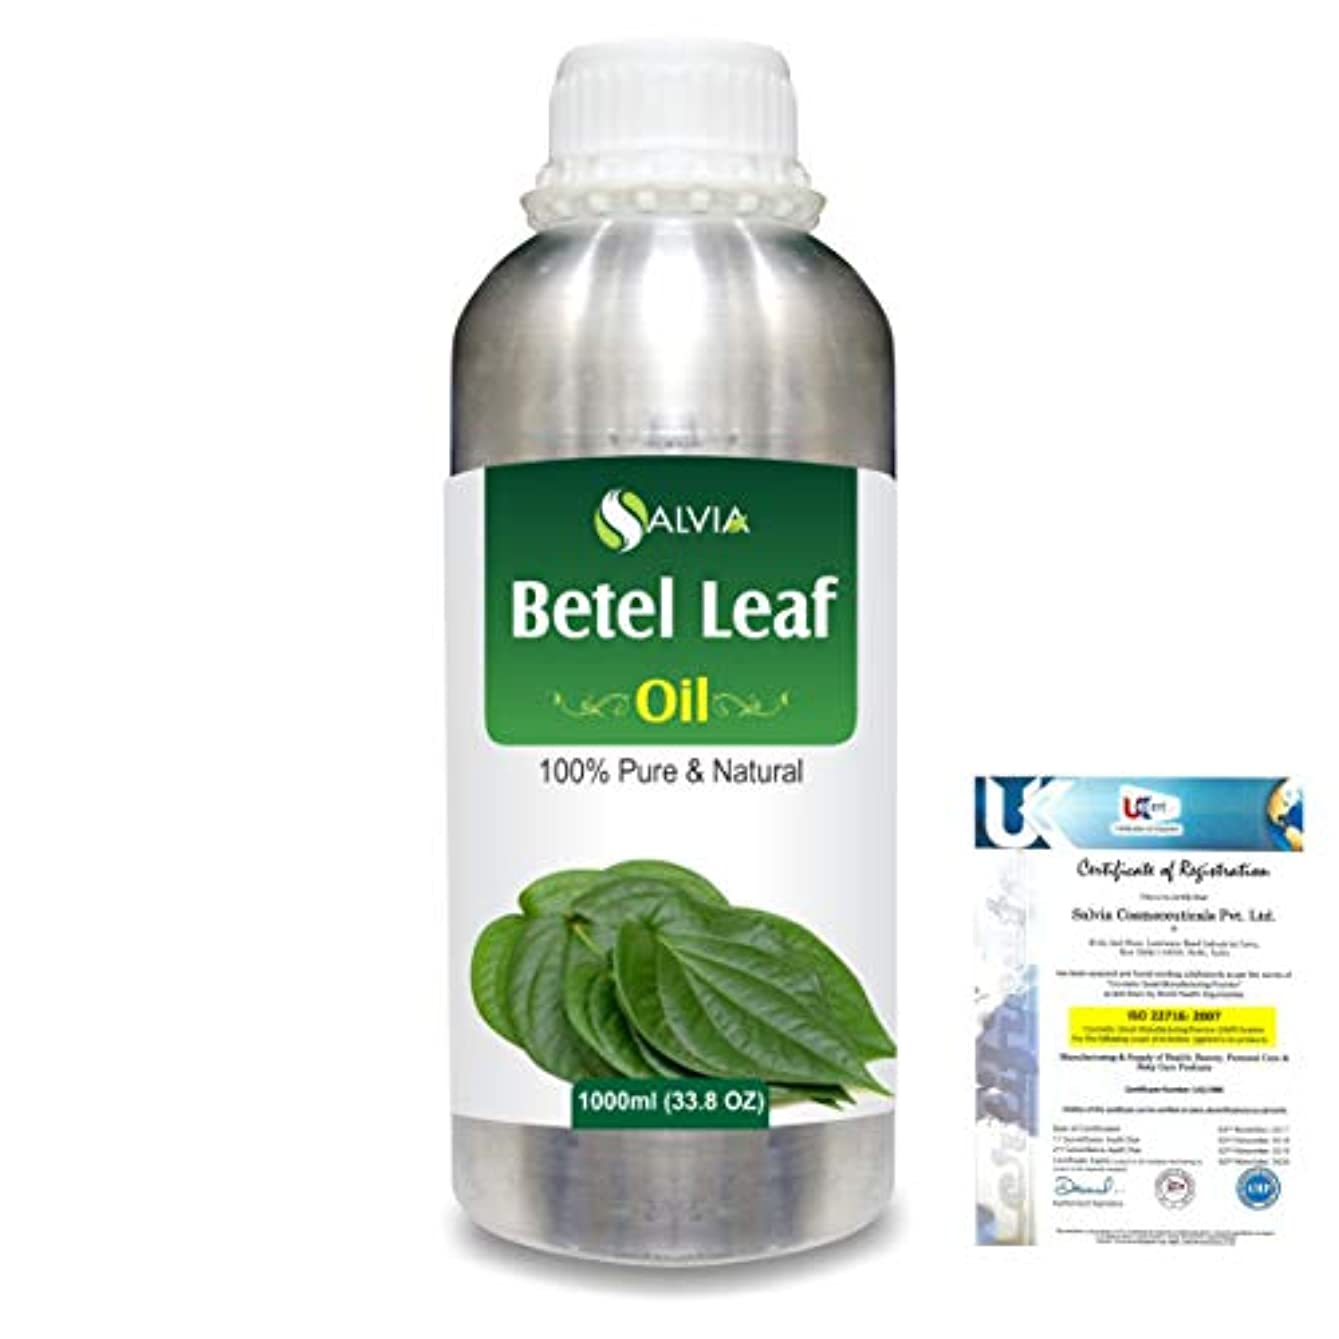 一緒に見つけた厳密にBetel Leaf (Piper Betle) 100% Natural Pure Essential Oil 1000ml/33.8fl.oz.